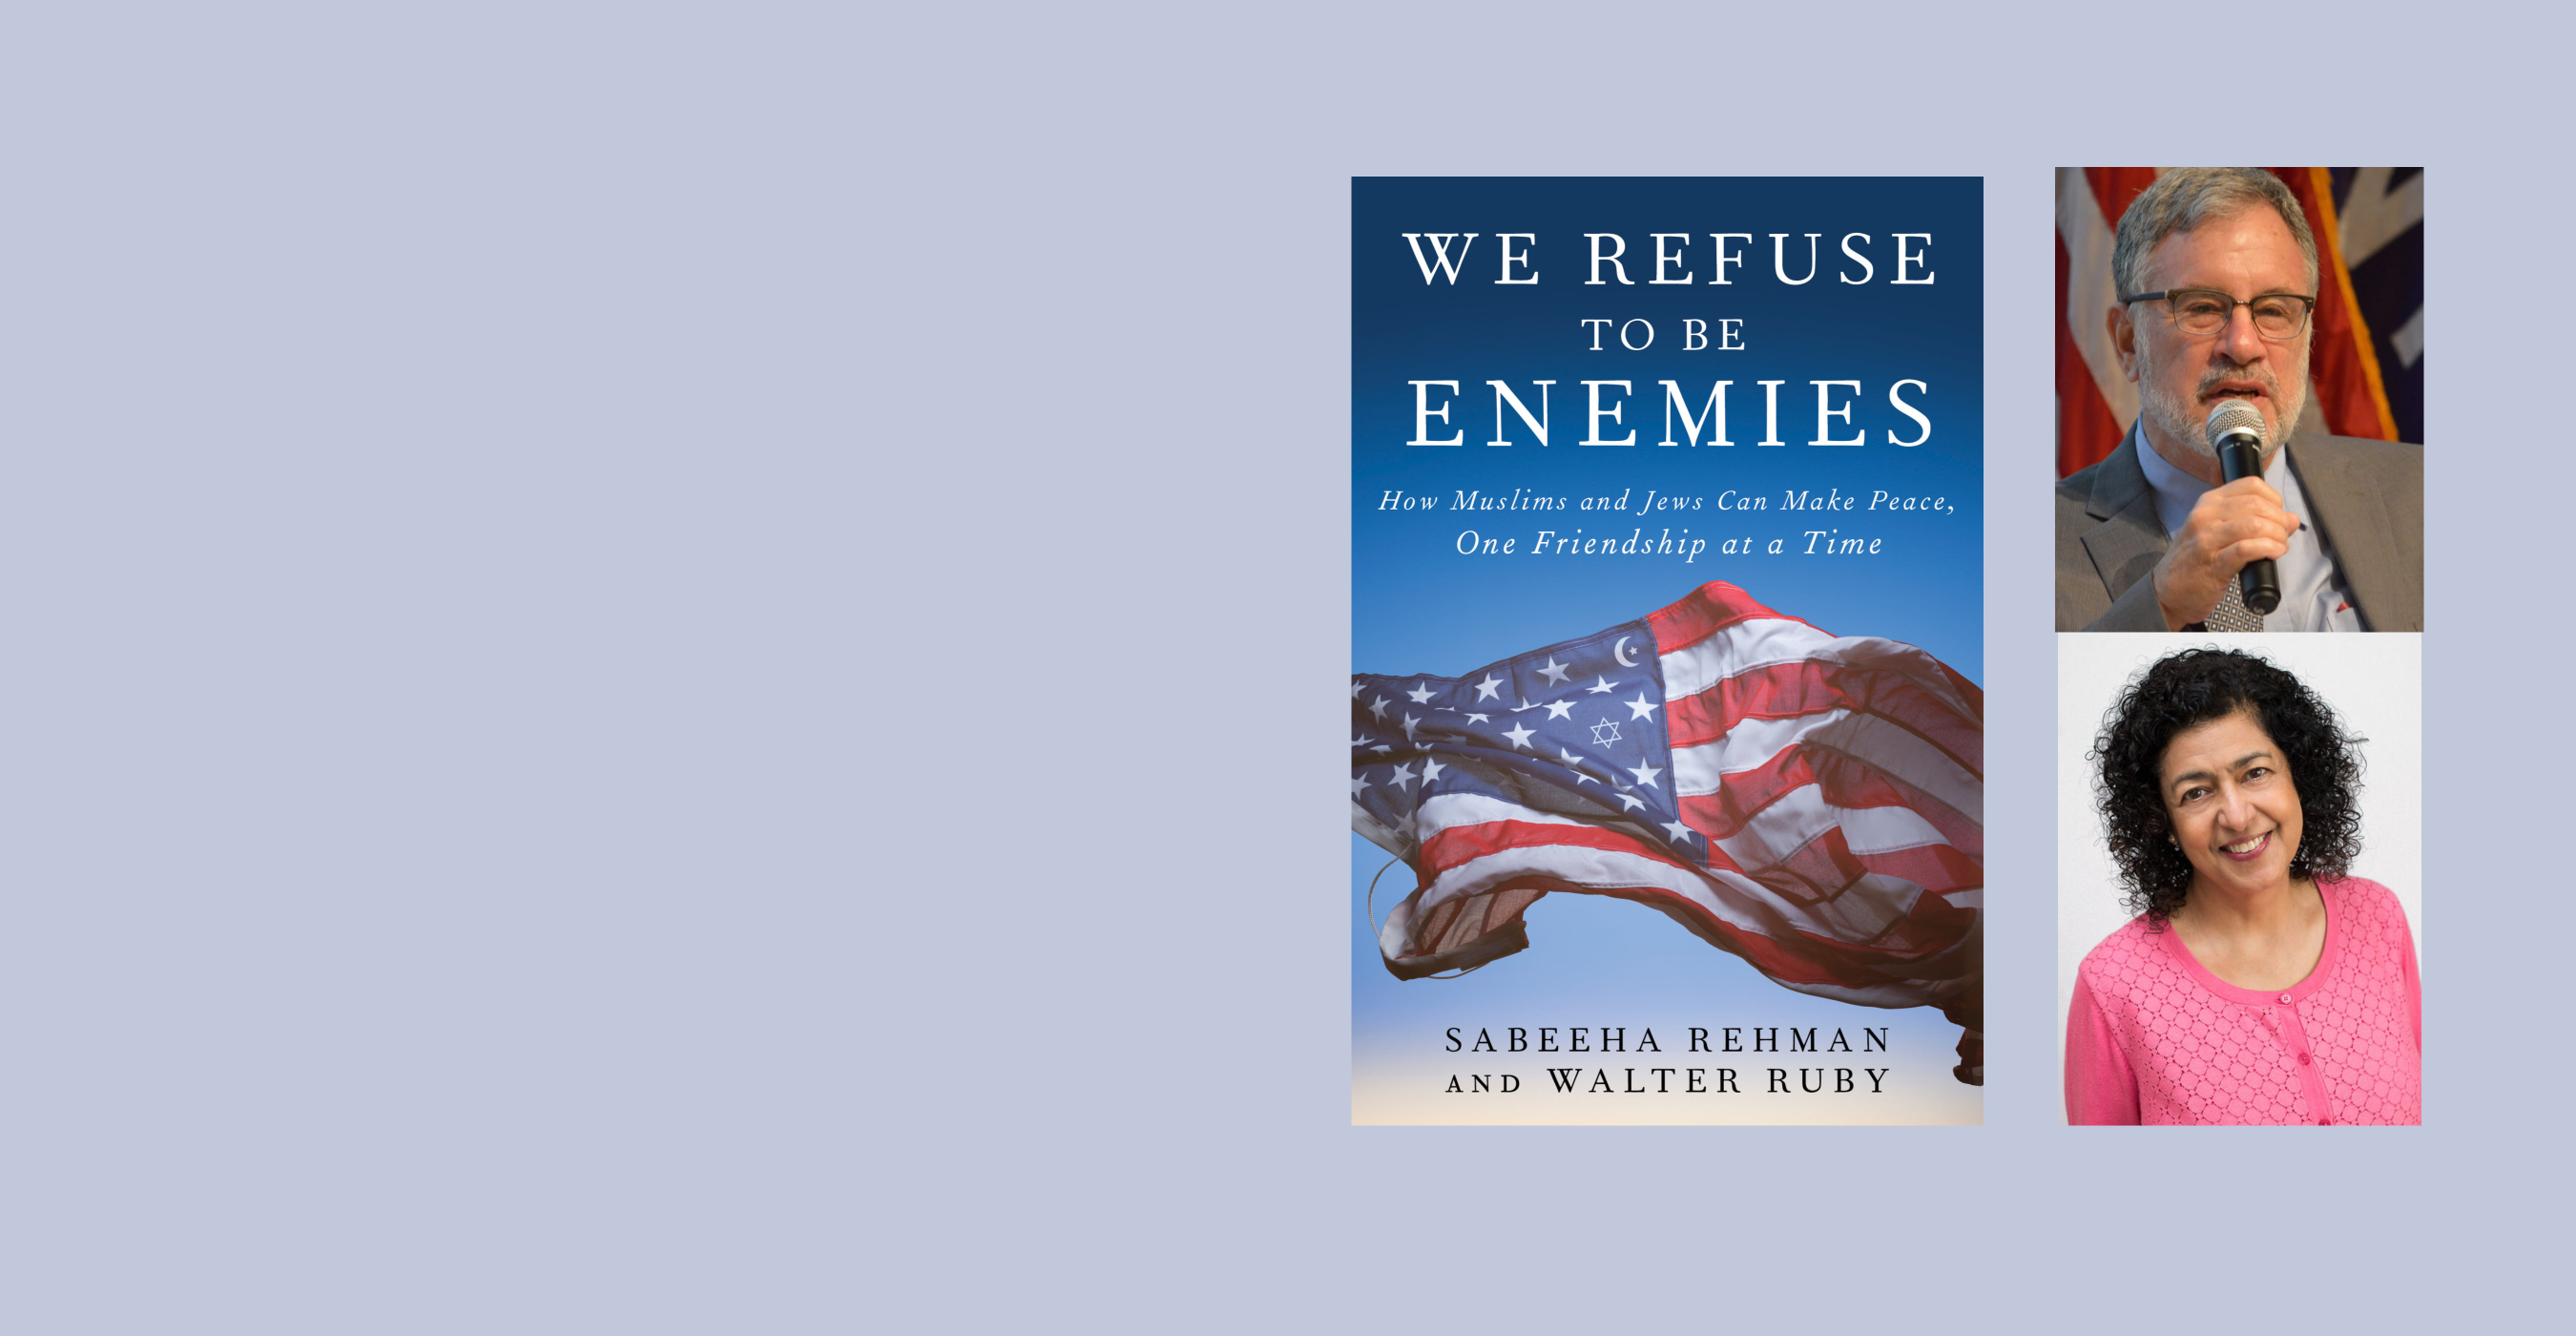 "<a href=""https://www.beaconhebrewalliance.org/event/discussion-with-sabeeha-rehman--walter-ruby-authors-of-we-refuse-to-be-enemies-how-muslims-and-jews-can-make-peace-one-friendship-at-a-time.html""